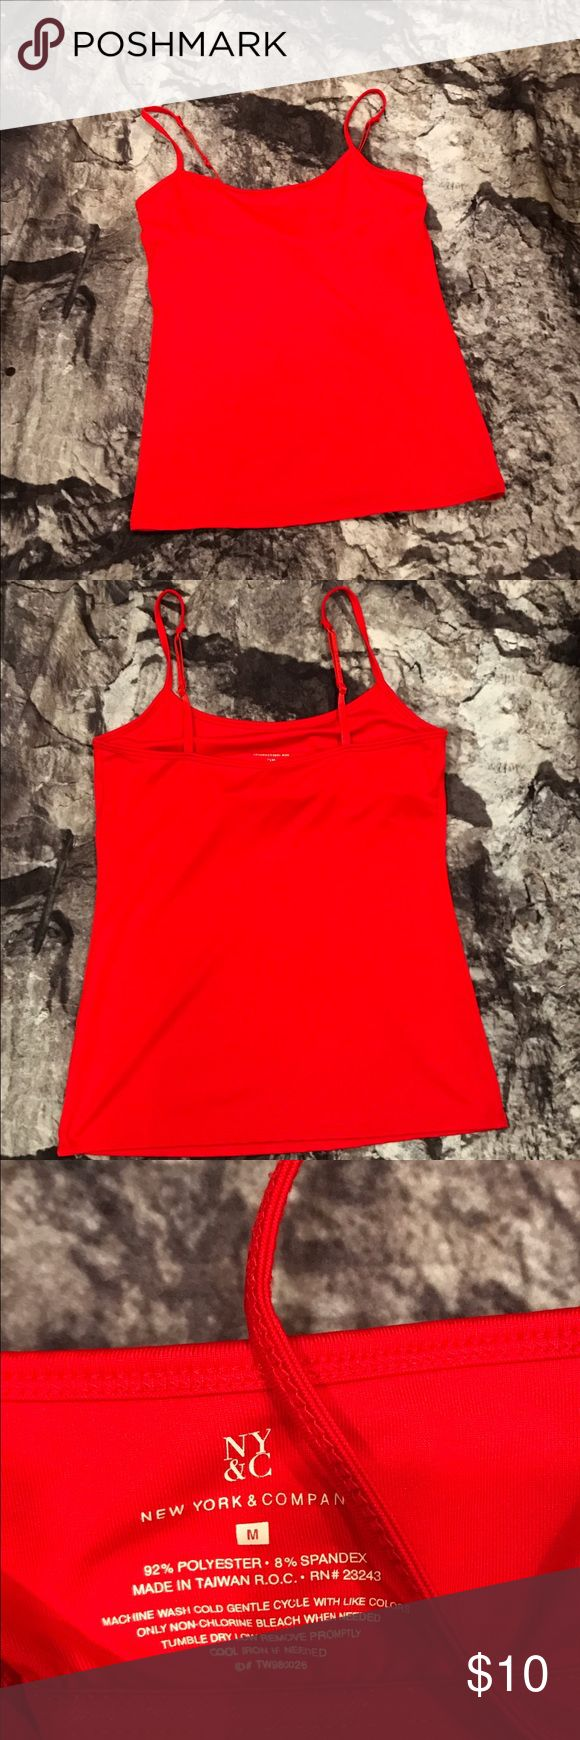 """New York & Co Bright Red Cami with Built In Bra New York & Co Bright Red Cami with Built In Bra. Length = 18"""" New York & Company Tops Camisoles"""